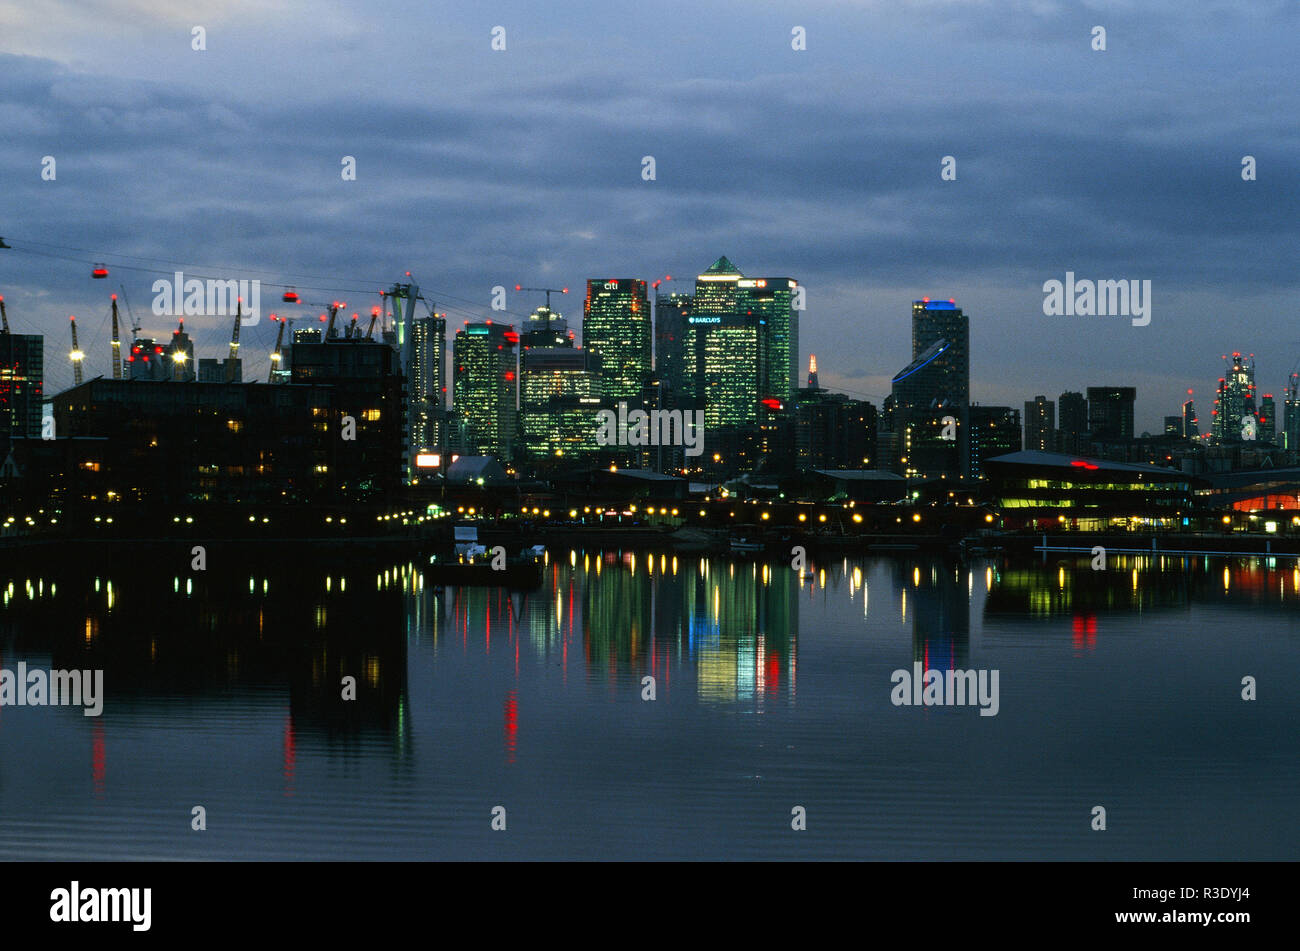 Canary Wharf on the Isle of Dogs at dusk, from Royal Victoria Dock, East London UK - Stock Image